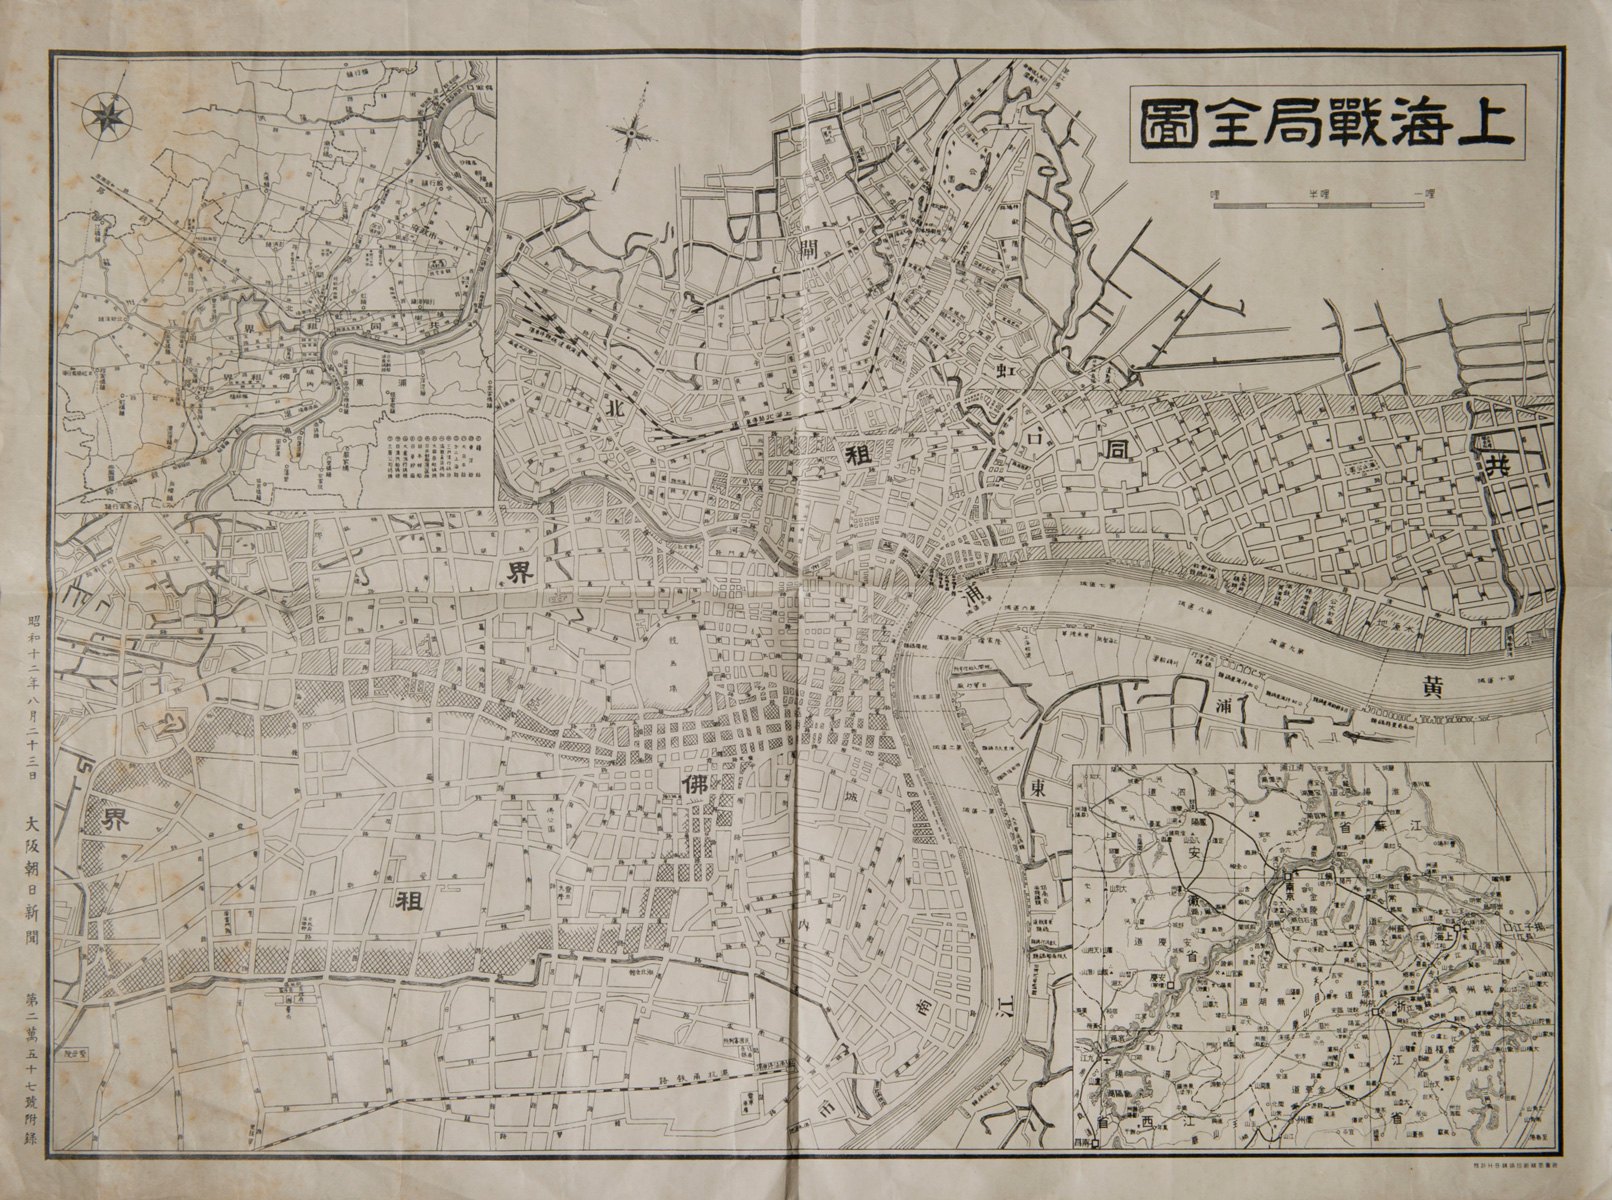 Shanghai Senkyoku Zenzu [Map of the Shanghai Incident (1932) Situation]